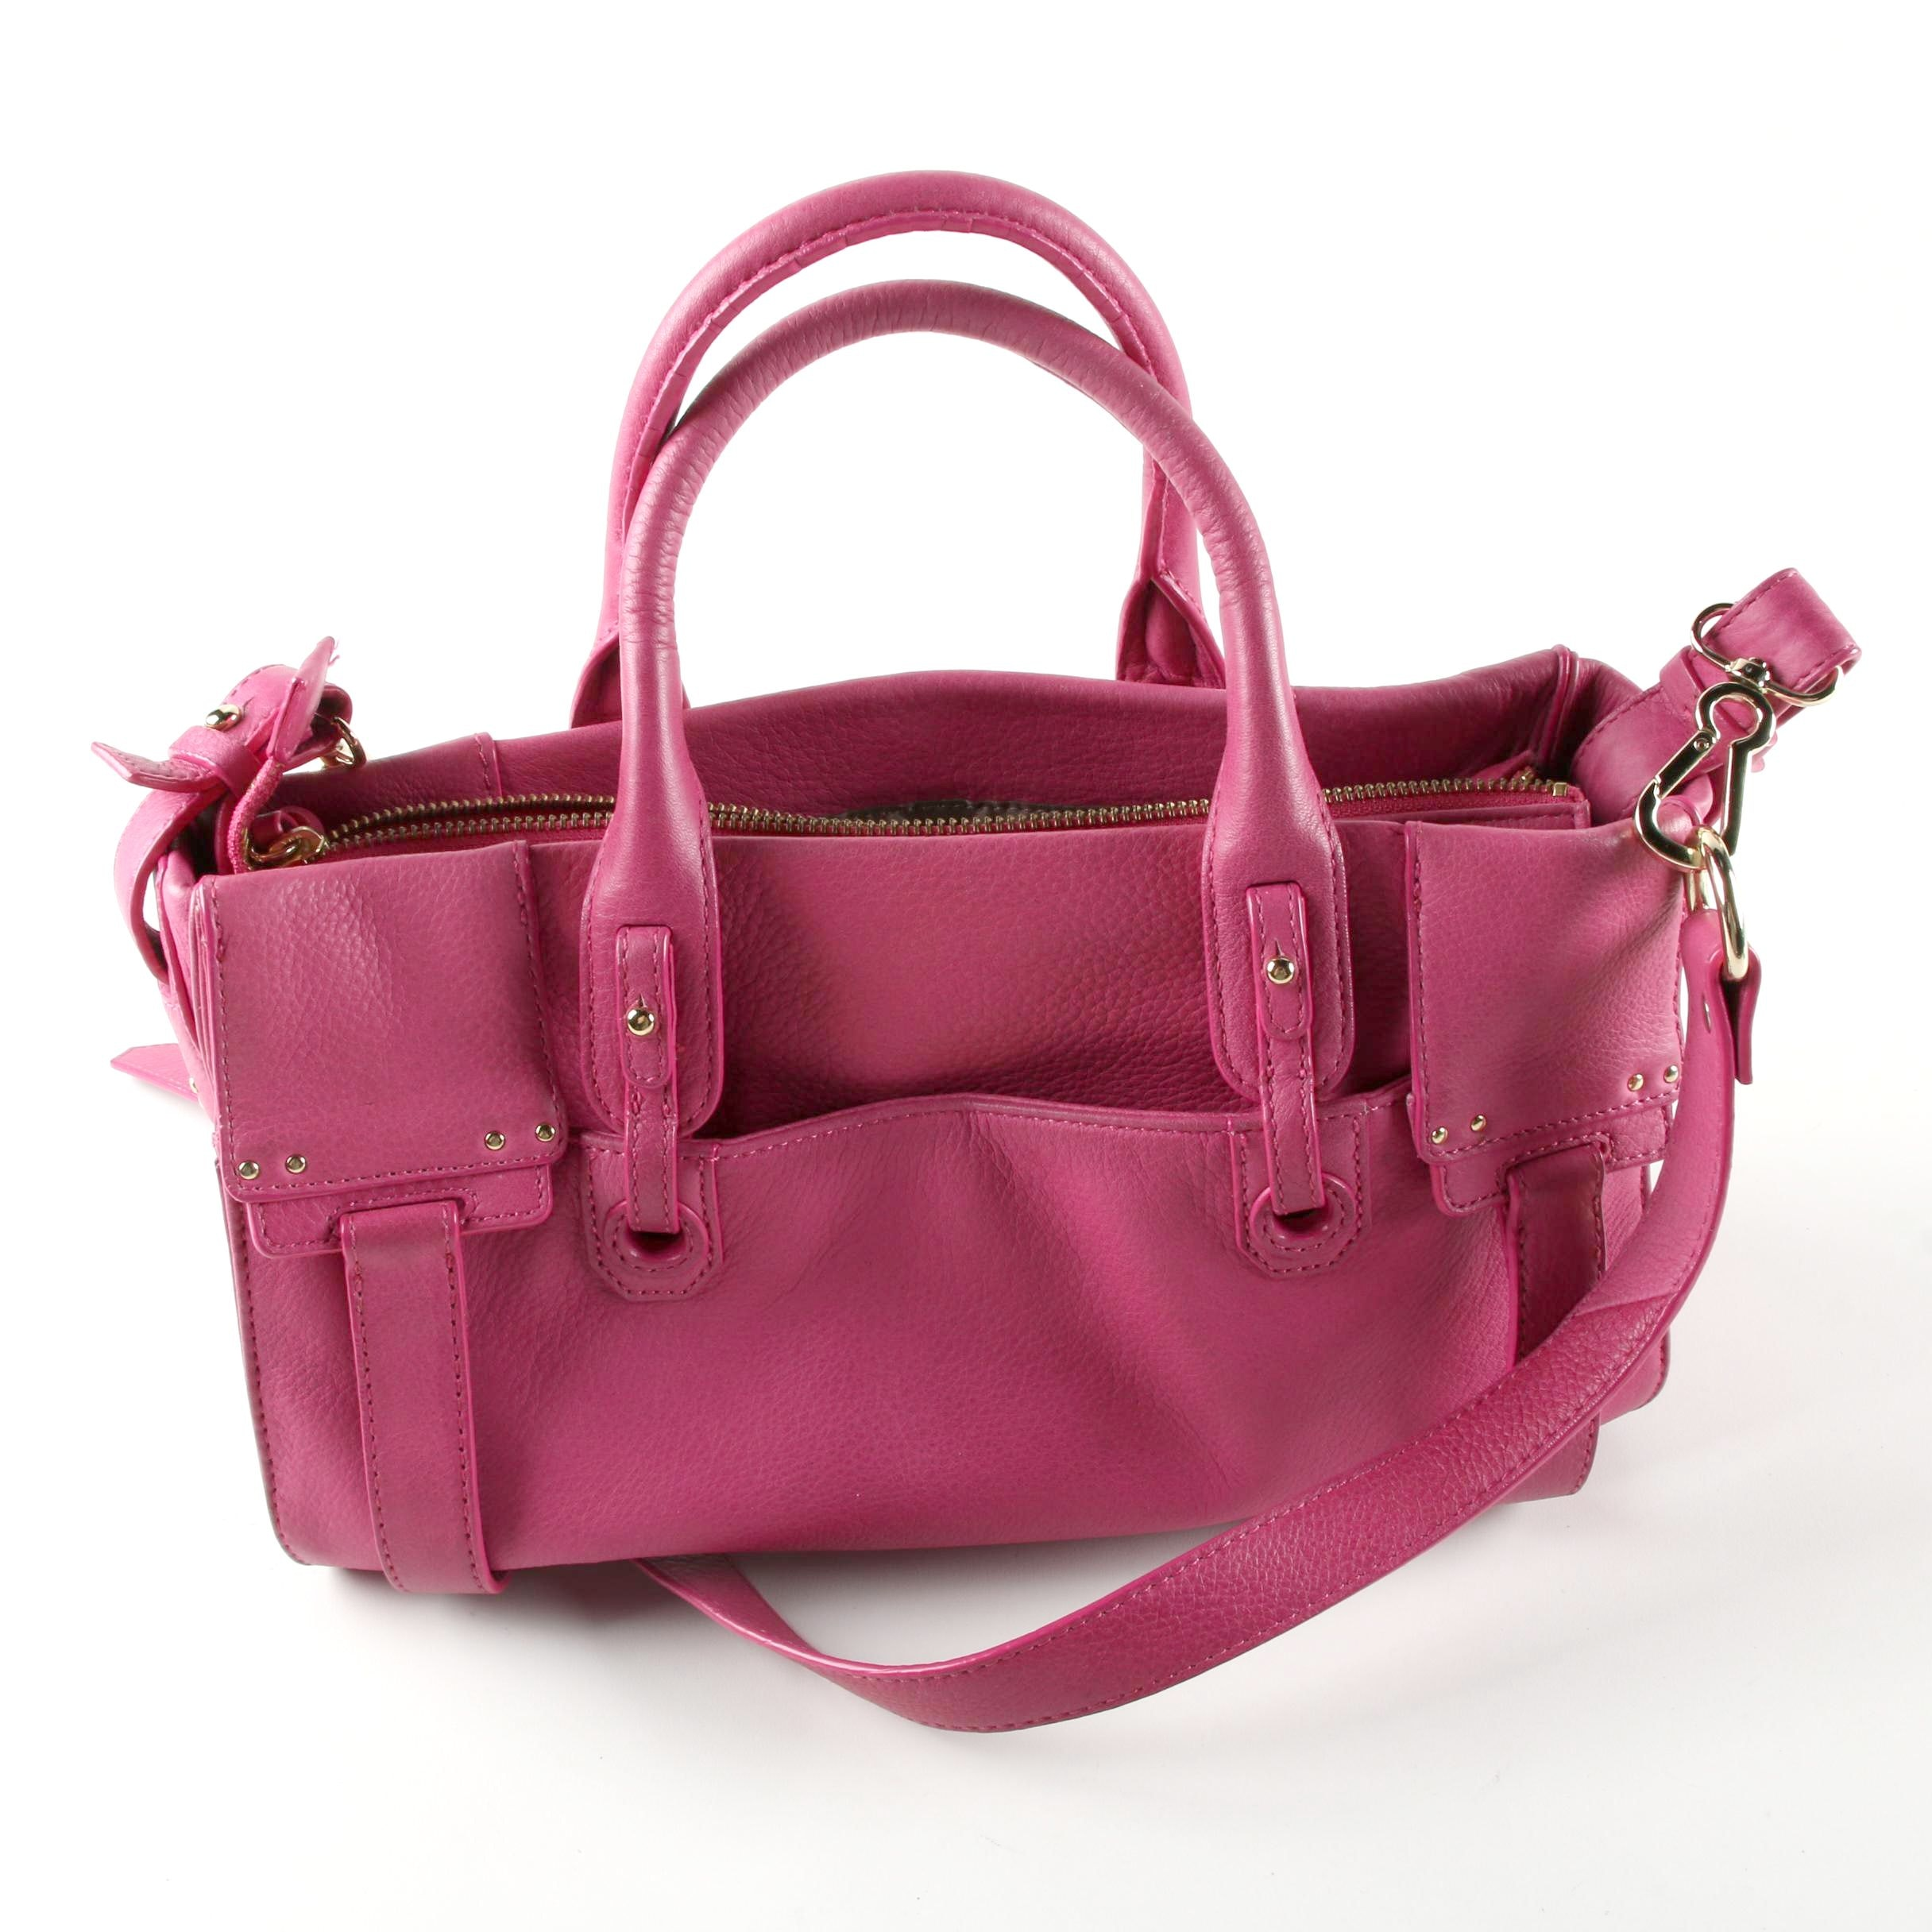 Vince Camuto Pink Leather Satchel